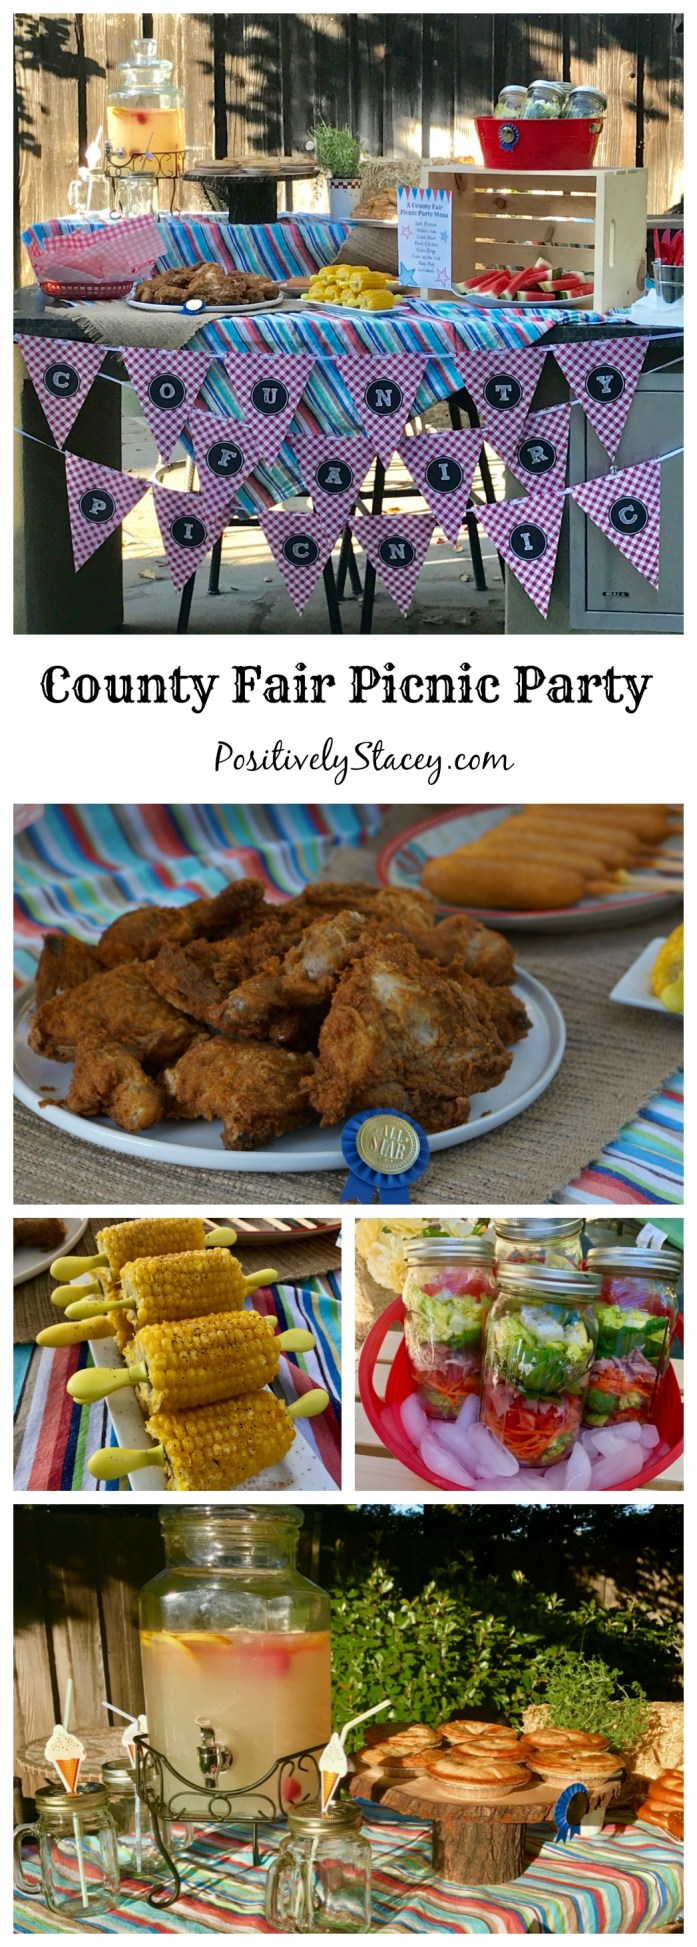 A County Fair Picnic Party that includes a yummy make-ahead menu of favorite fair foods and carnival games for everyone to play.